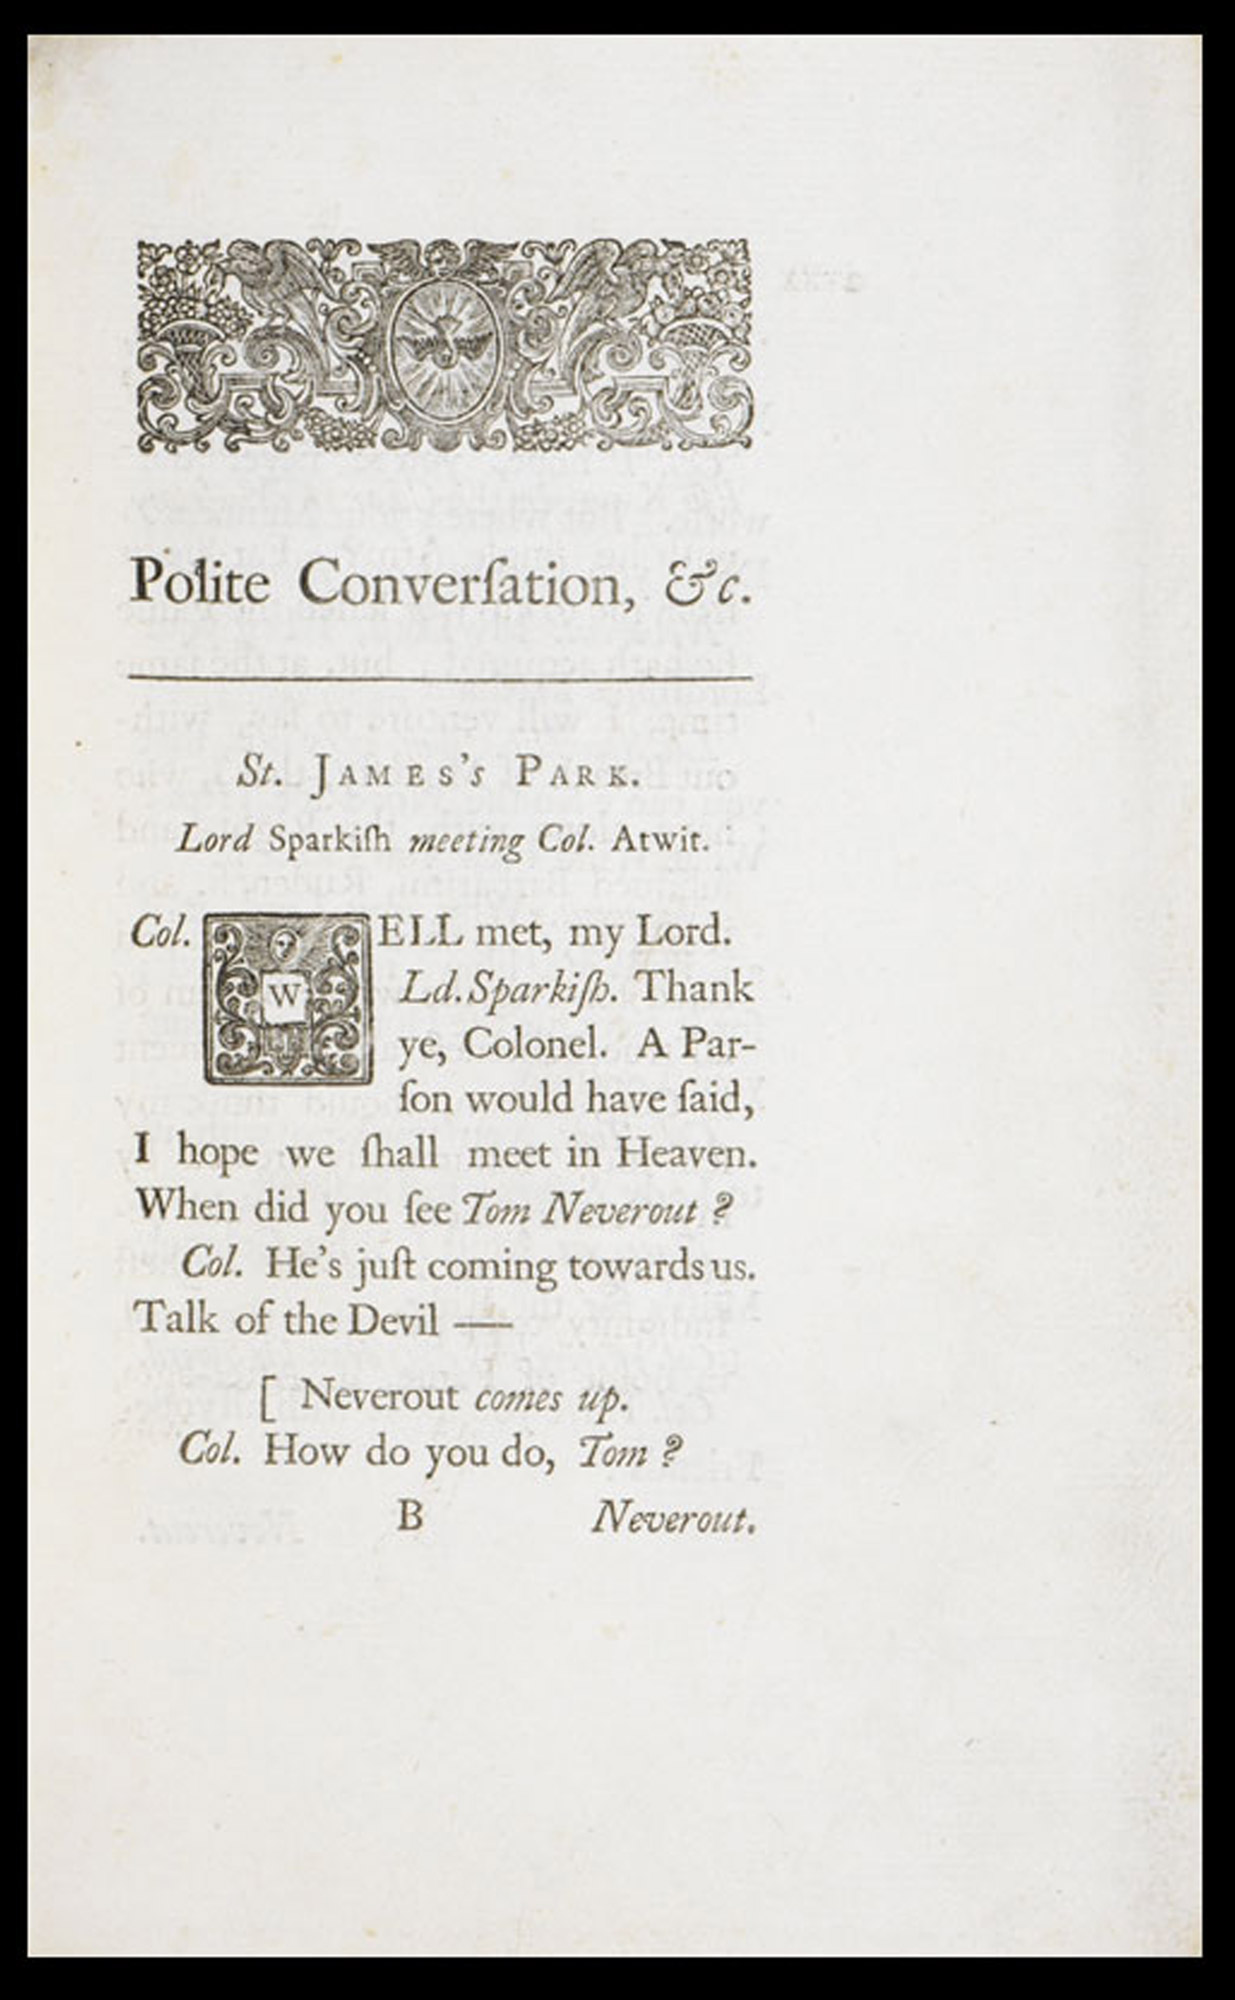 Jonathan Swift's Polite conversation